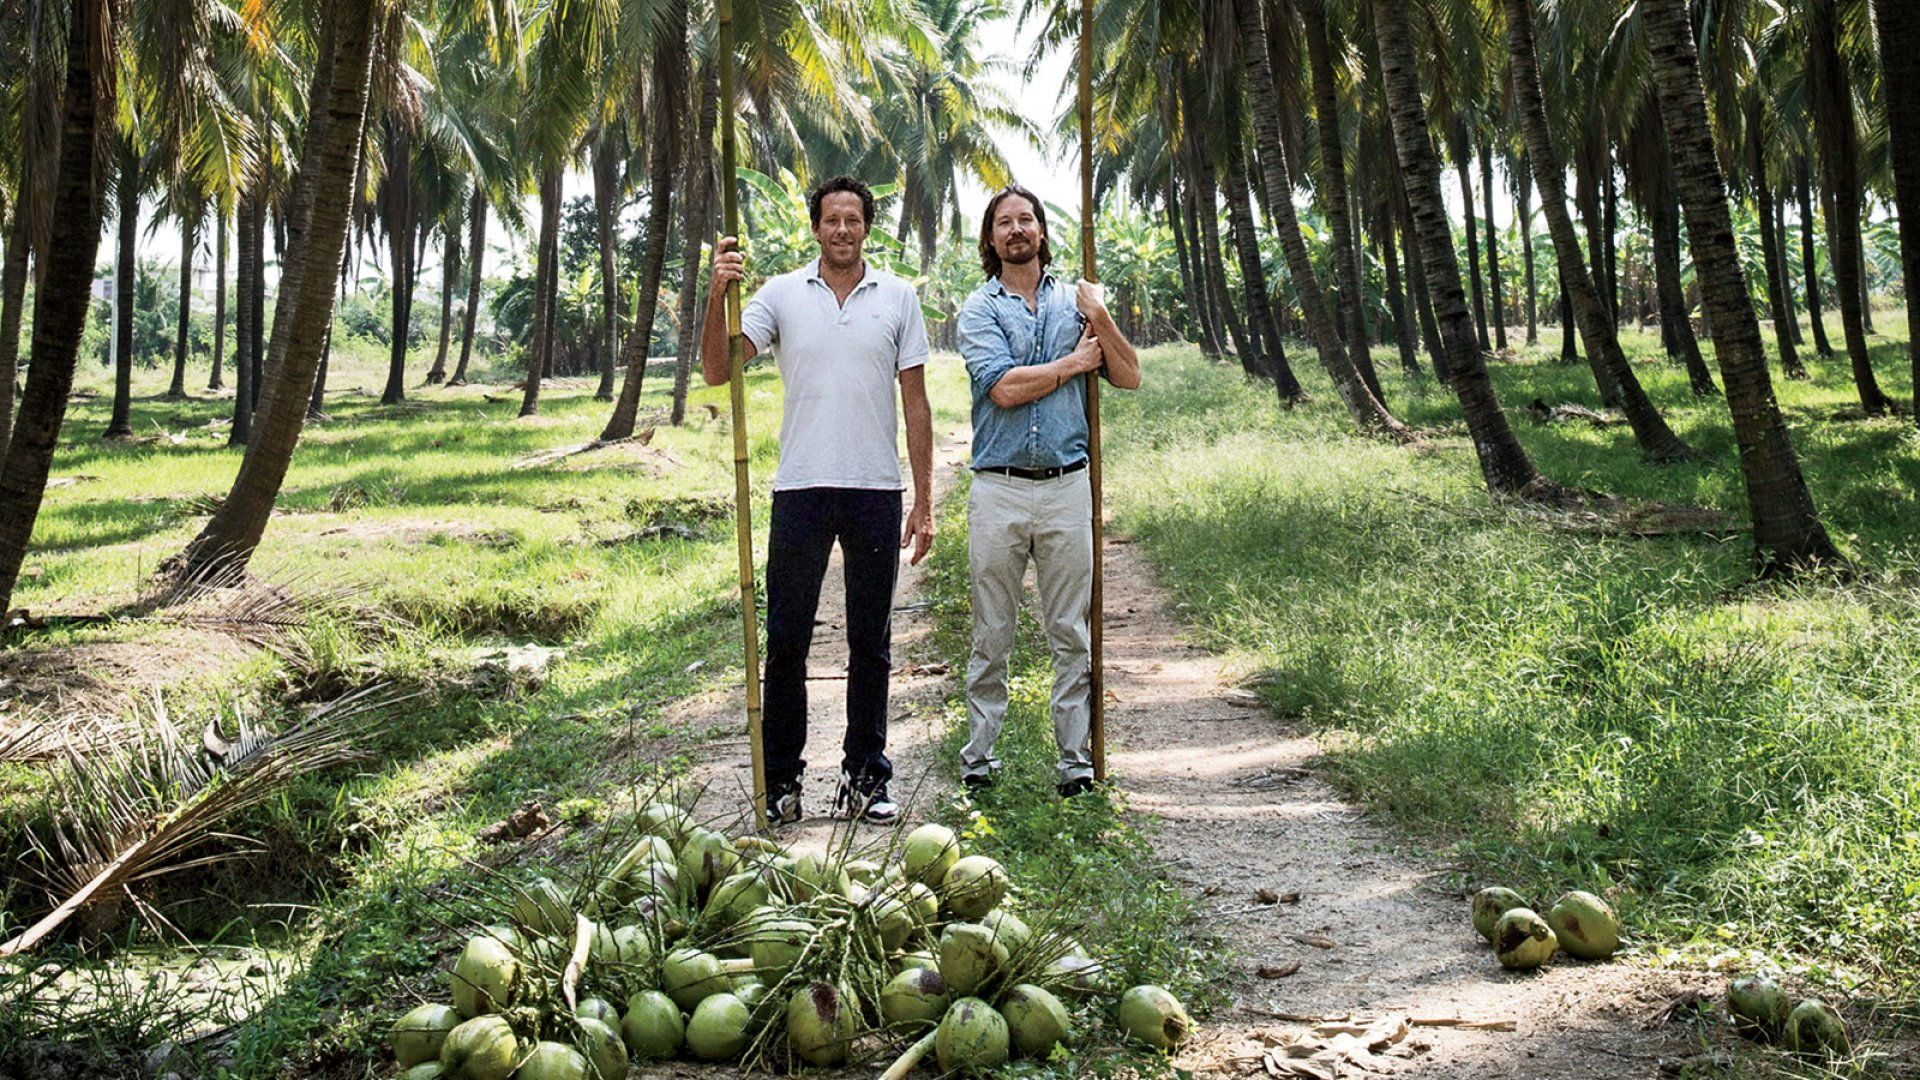 Douglas Riboud (left) and Justin Guilbert at a farm in Thailand where Harmless Harvest coconuts are grown.